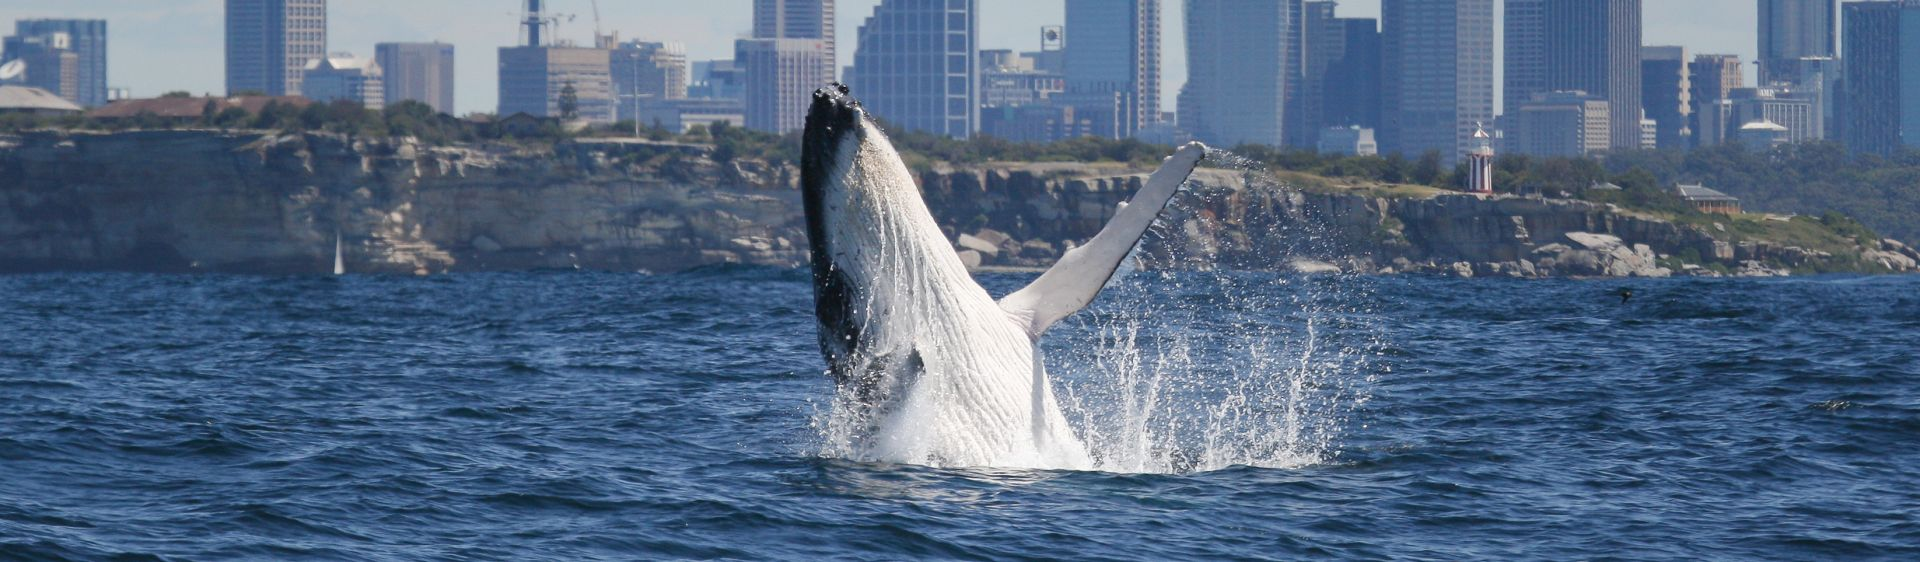 Whale watching, Sydney